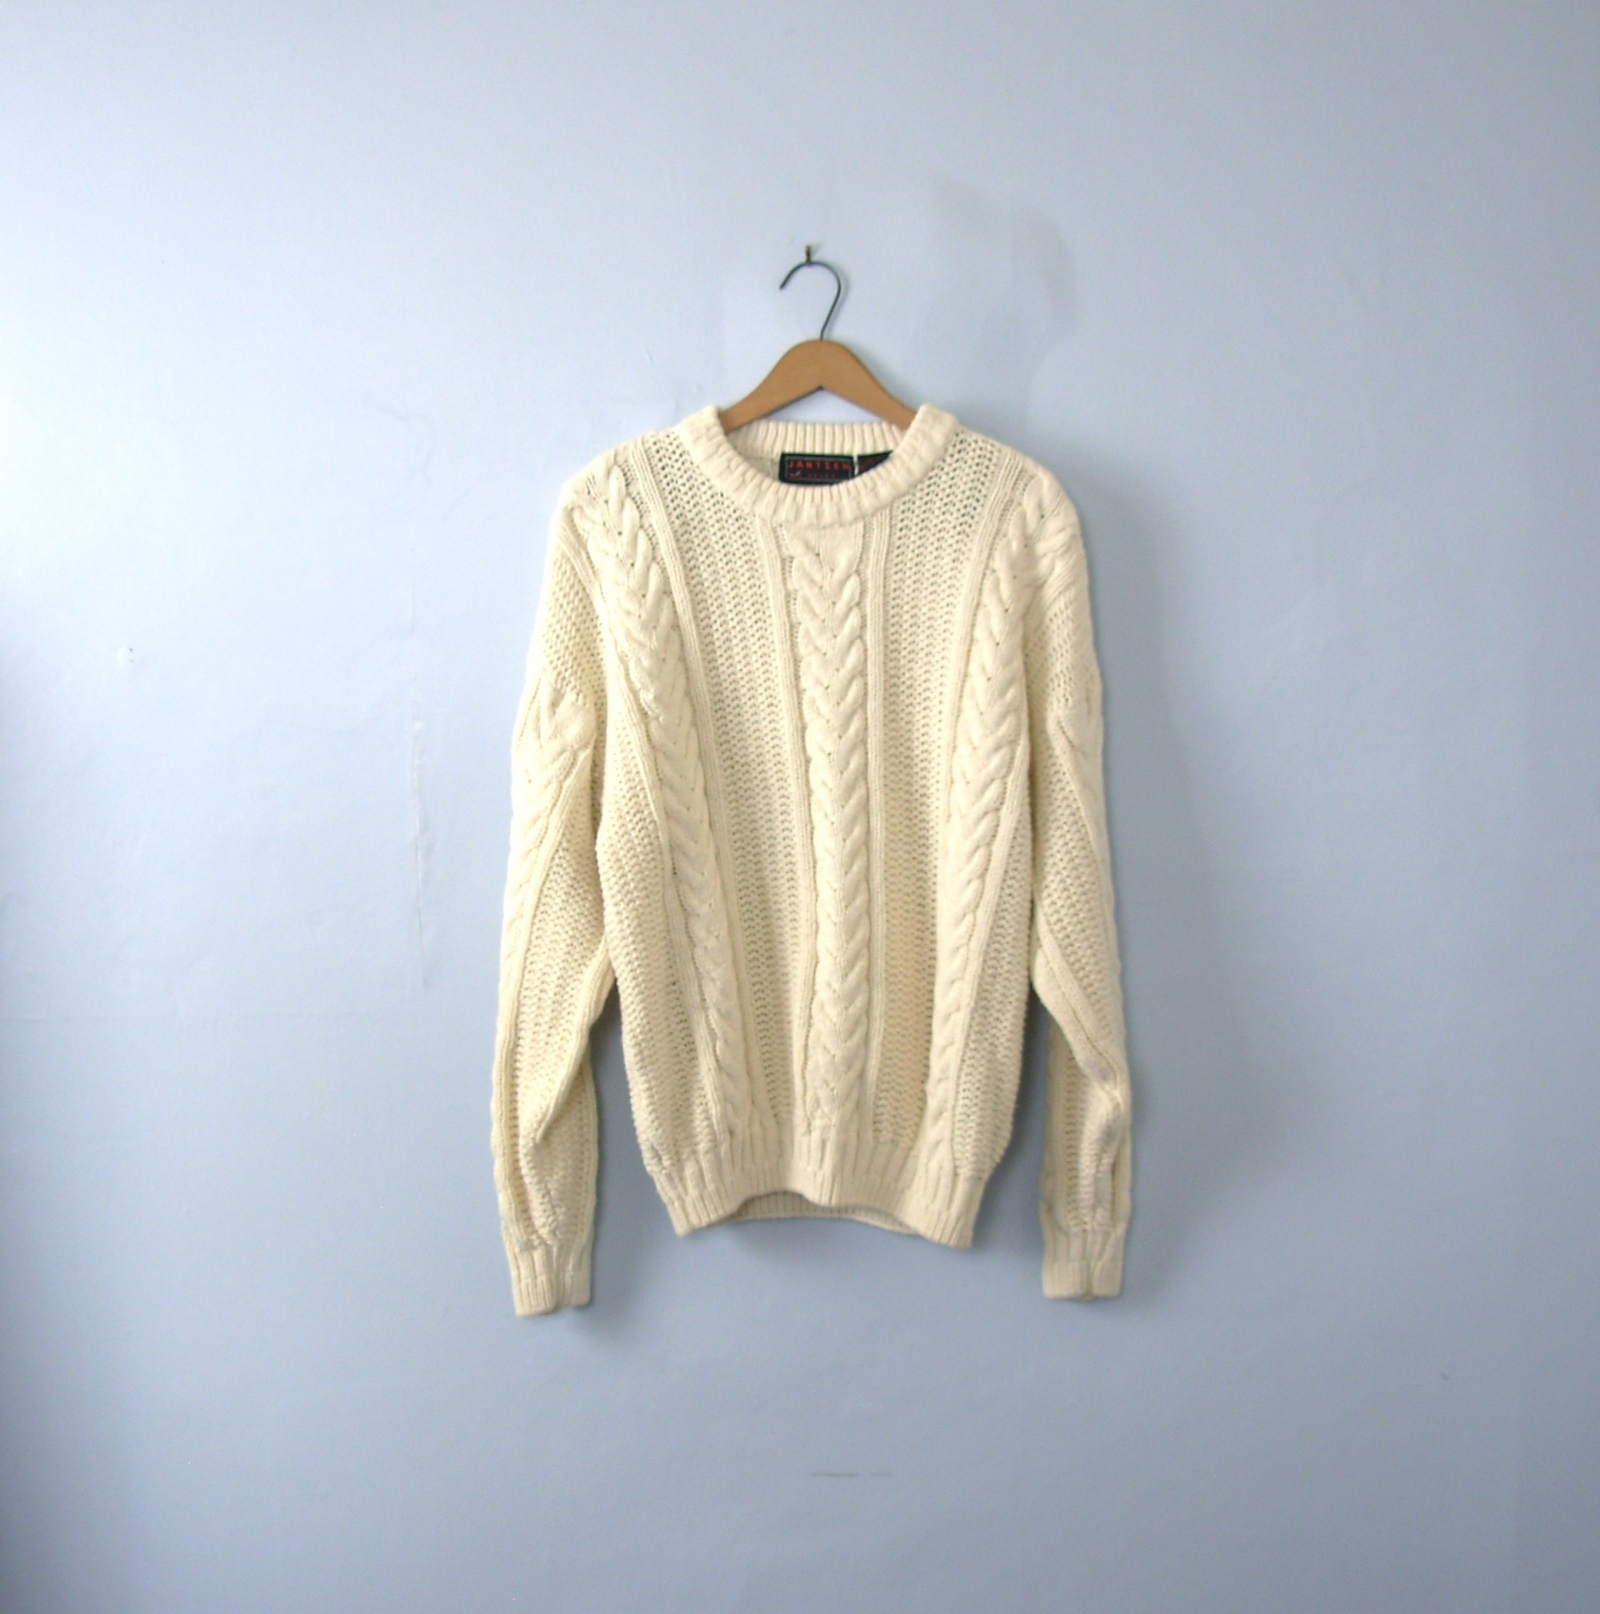 Vintage 80s Off White Oversized Cable Knit Sweater Cream Cotton